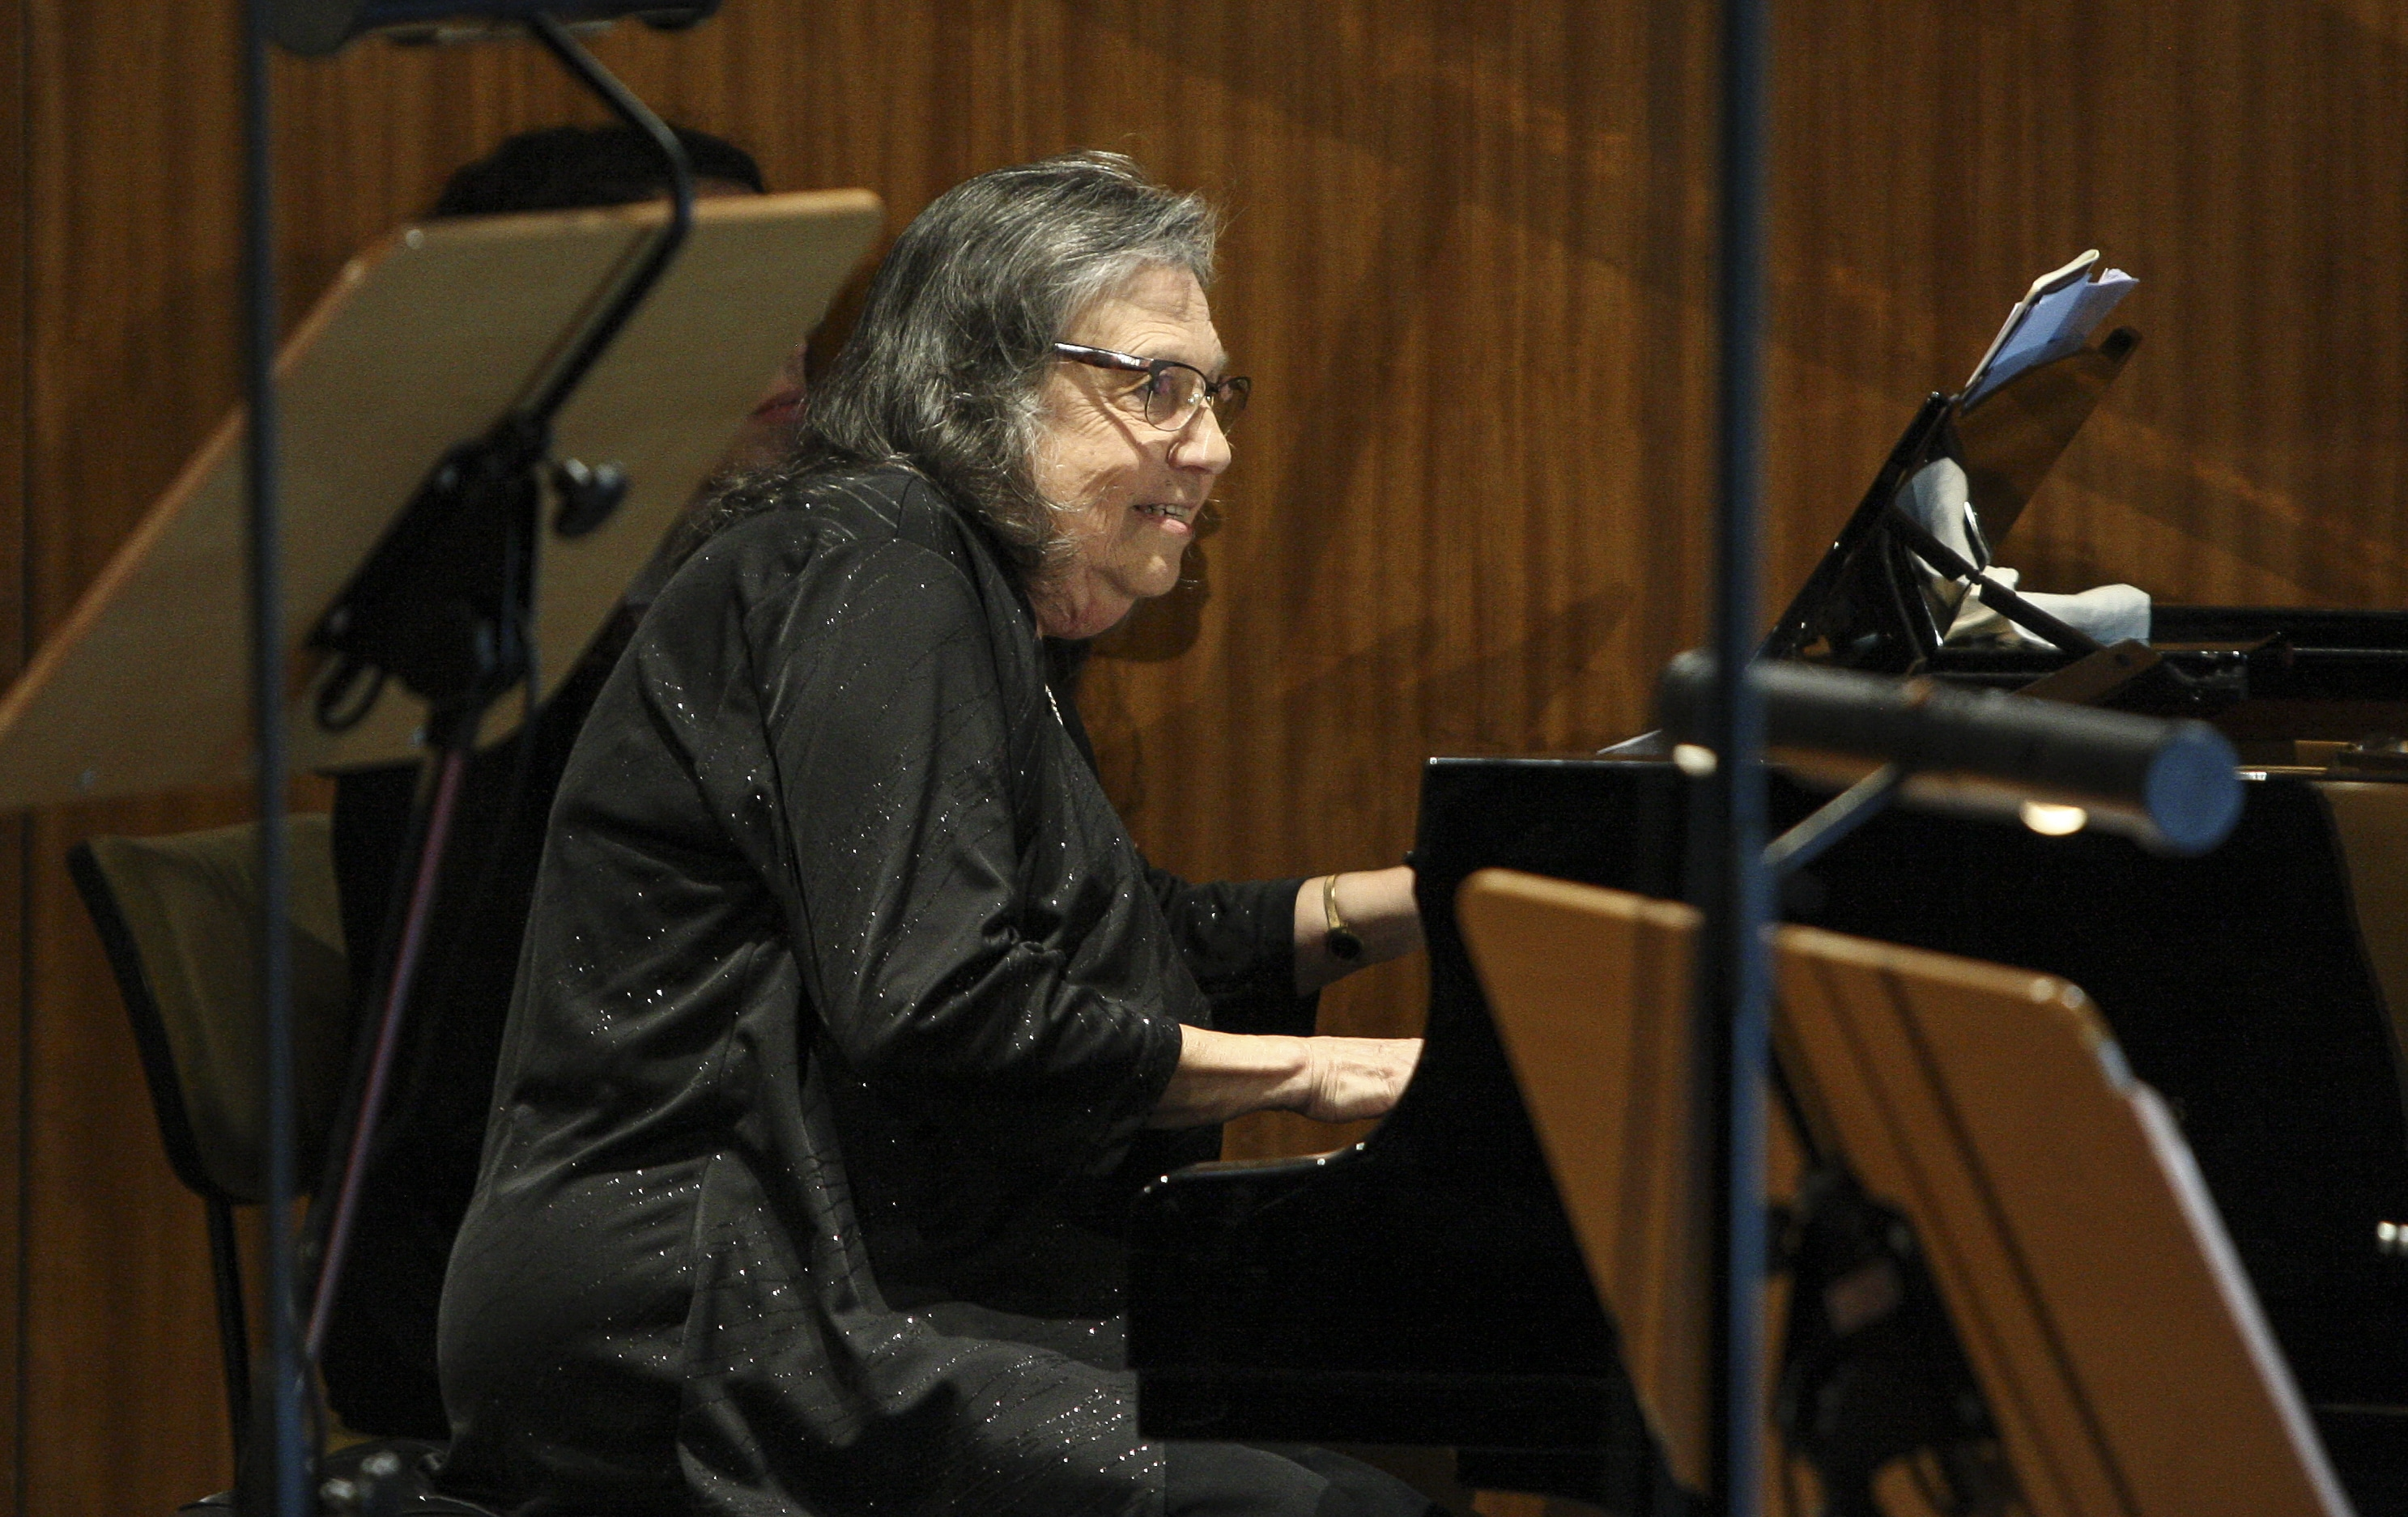 Portugal's Grande Dame of the piano dies at 82